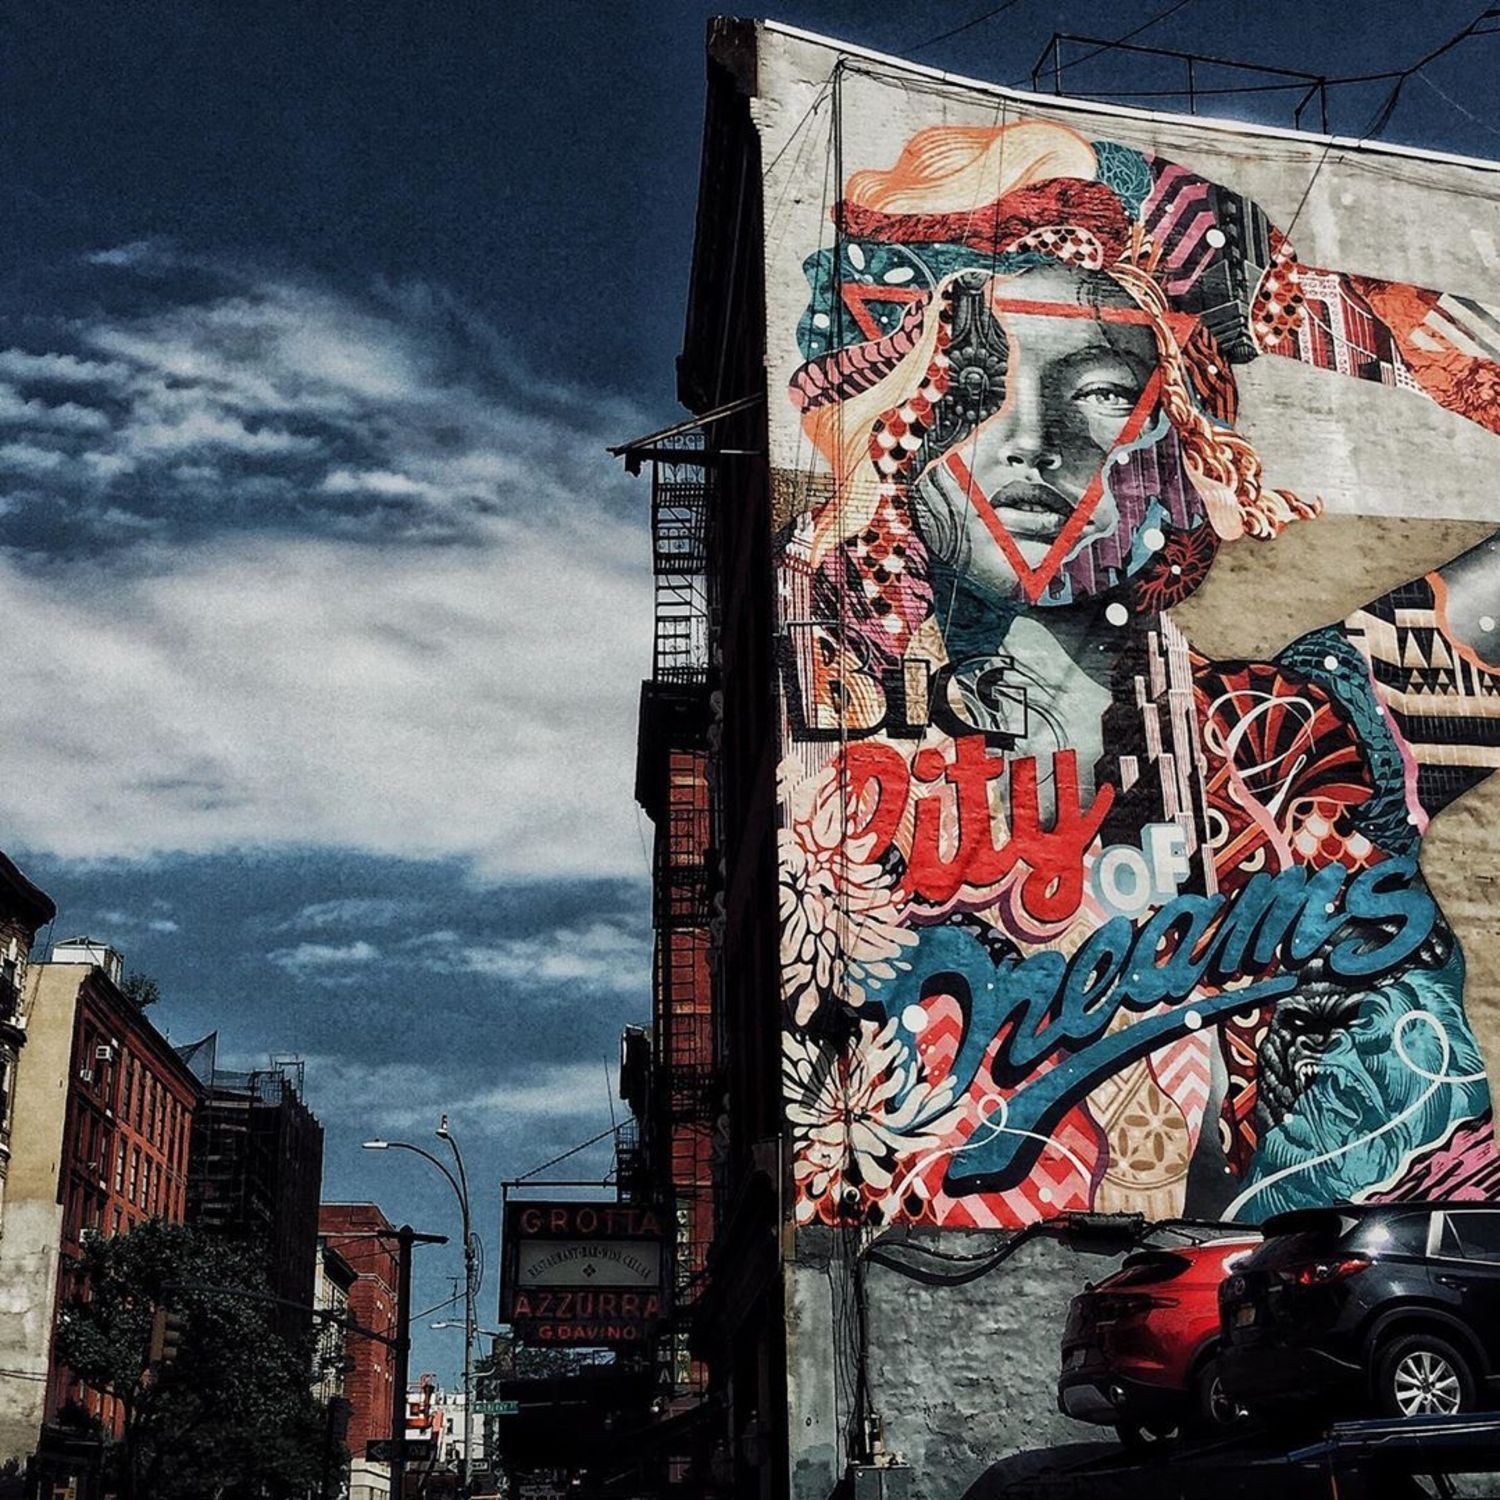 Tristan Eaton Mural in Little Italy, Manhattan